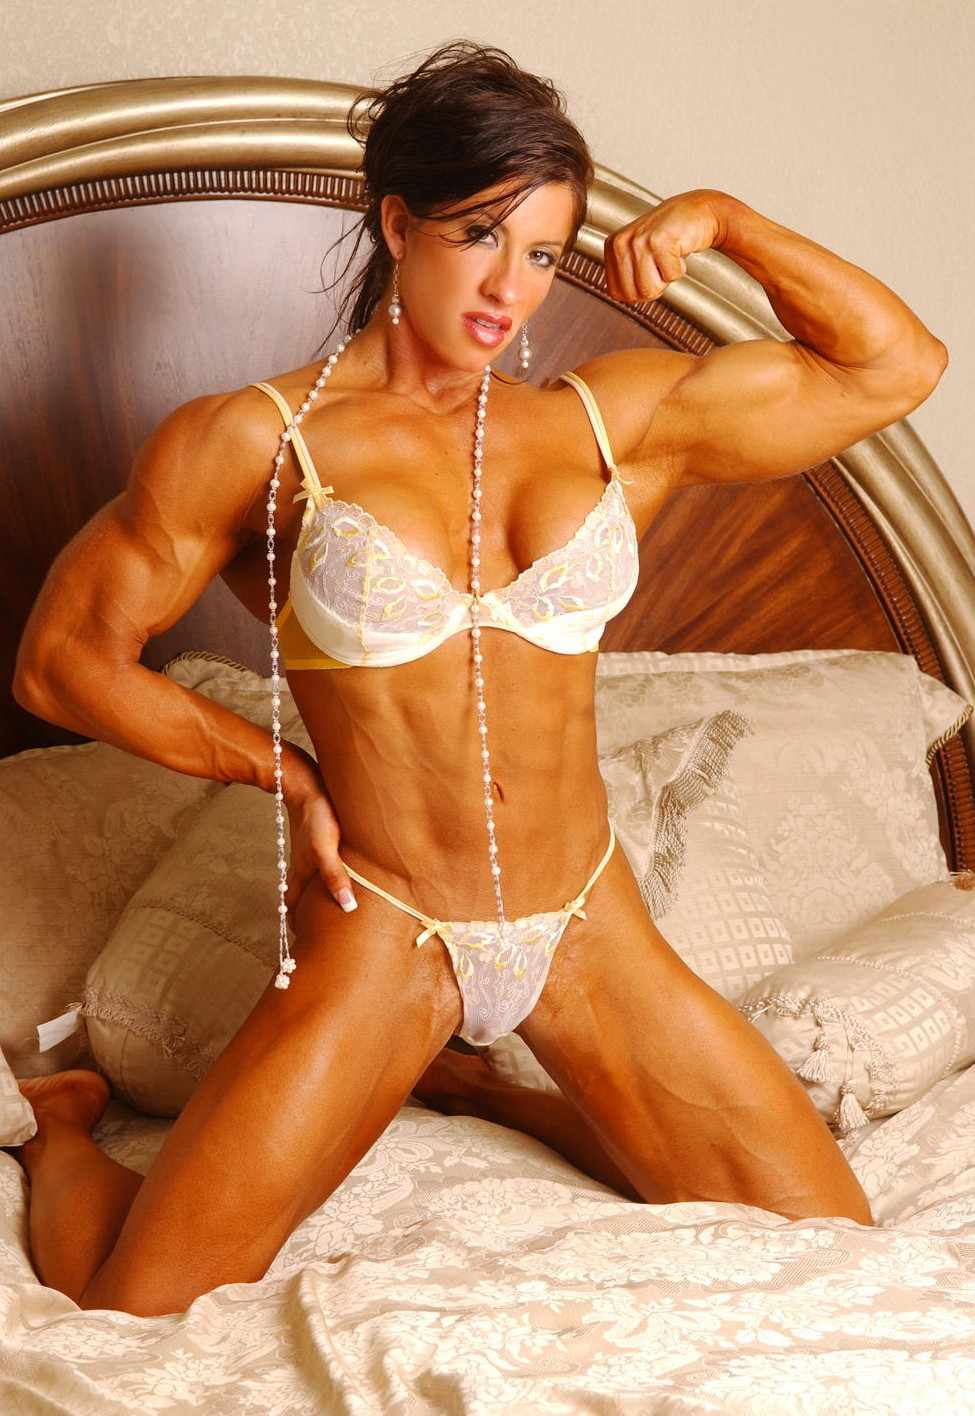 Sexy Muscular Girls In Bedroom Angela Salvagno-5320